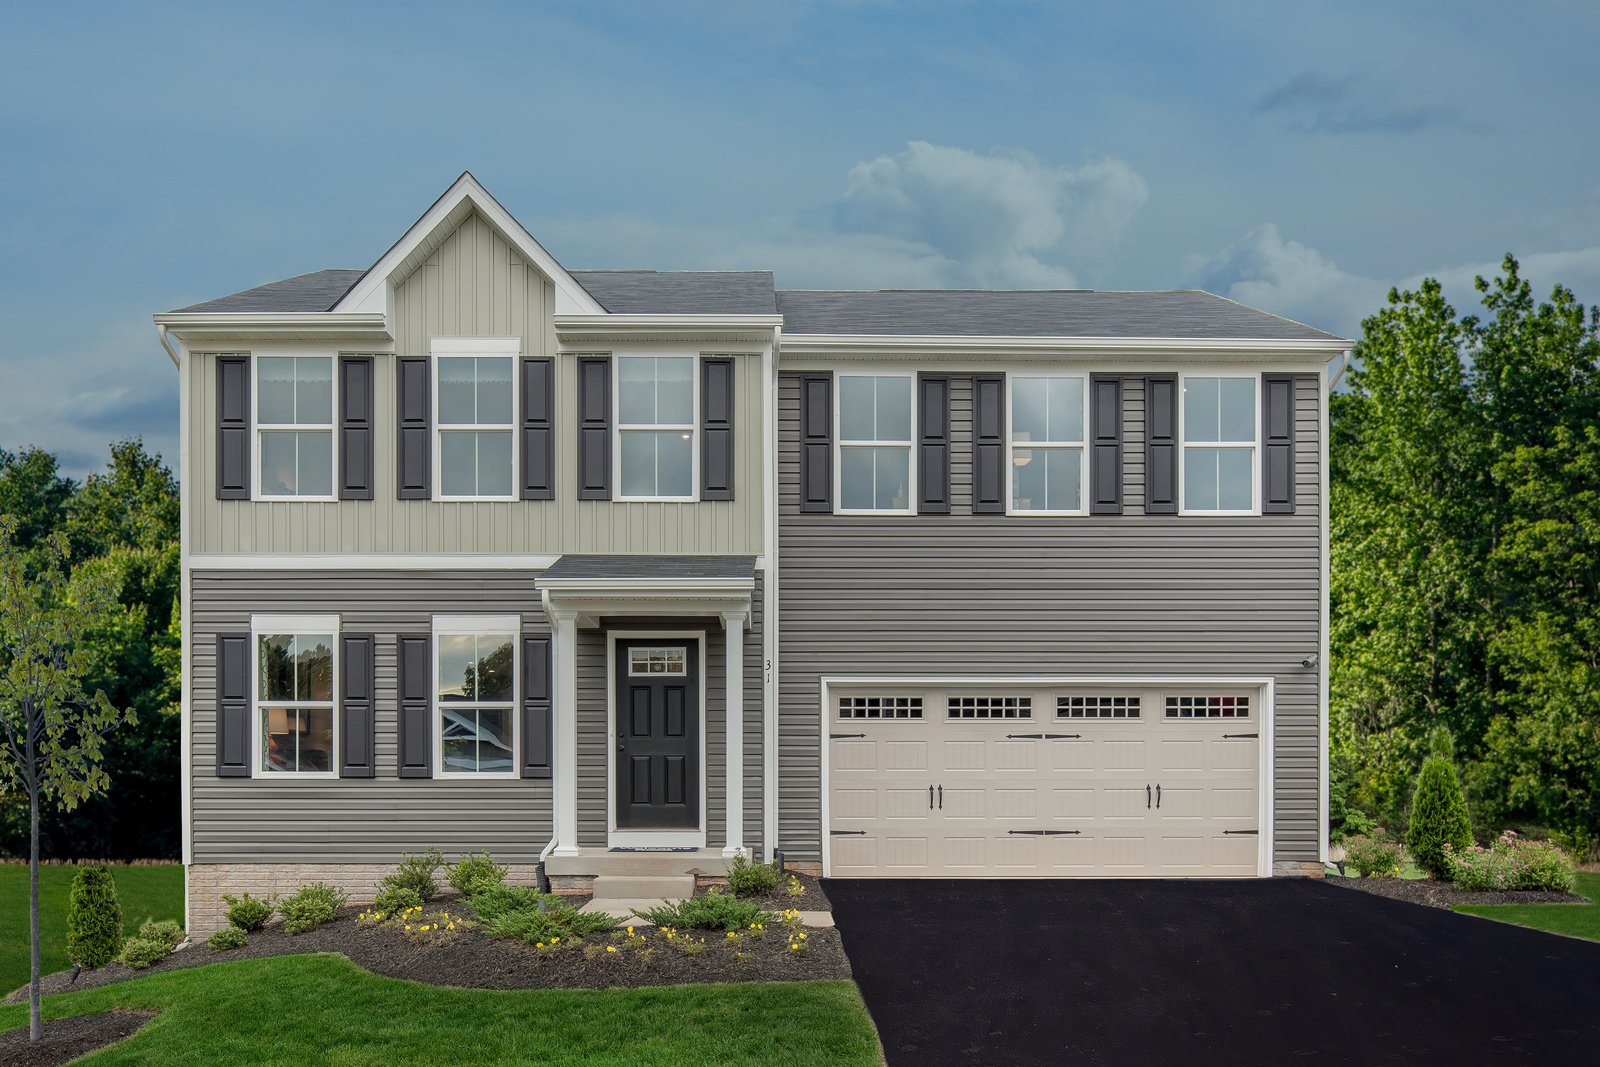 New Homes For Sale At Pendleton In Concord Nc Within The Cabarrus